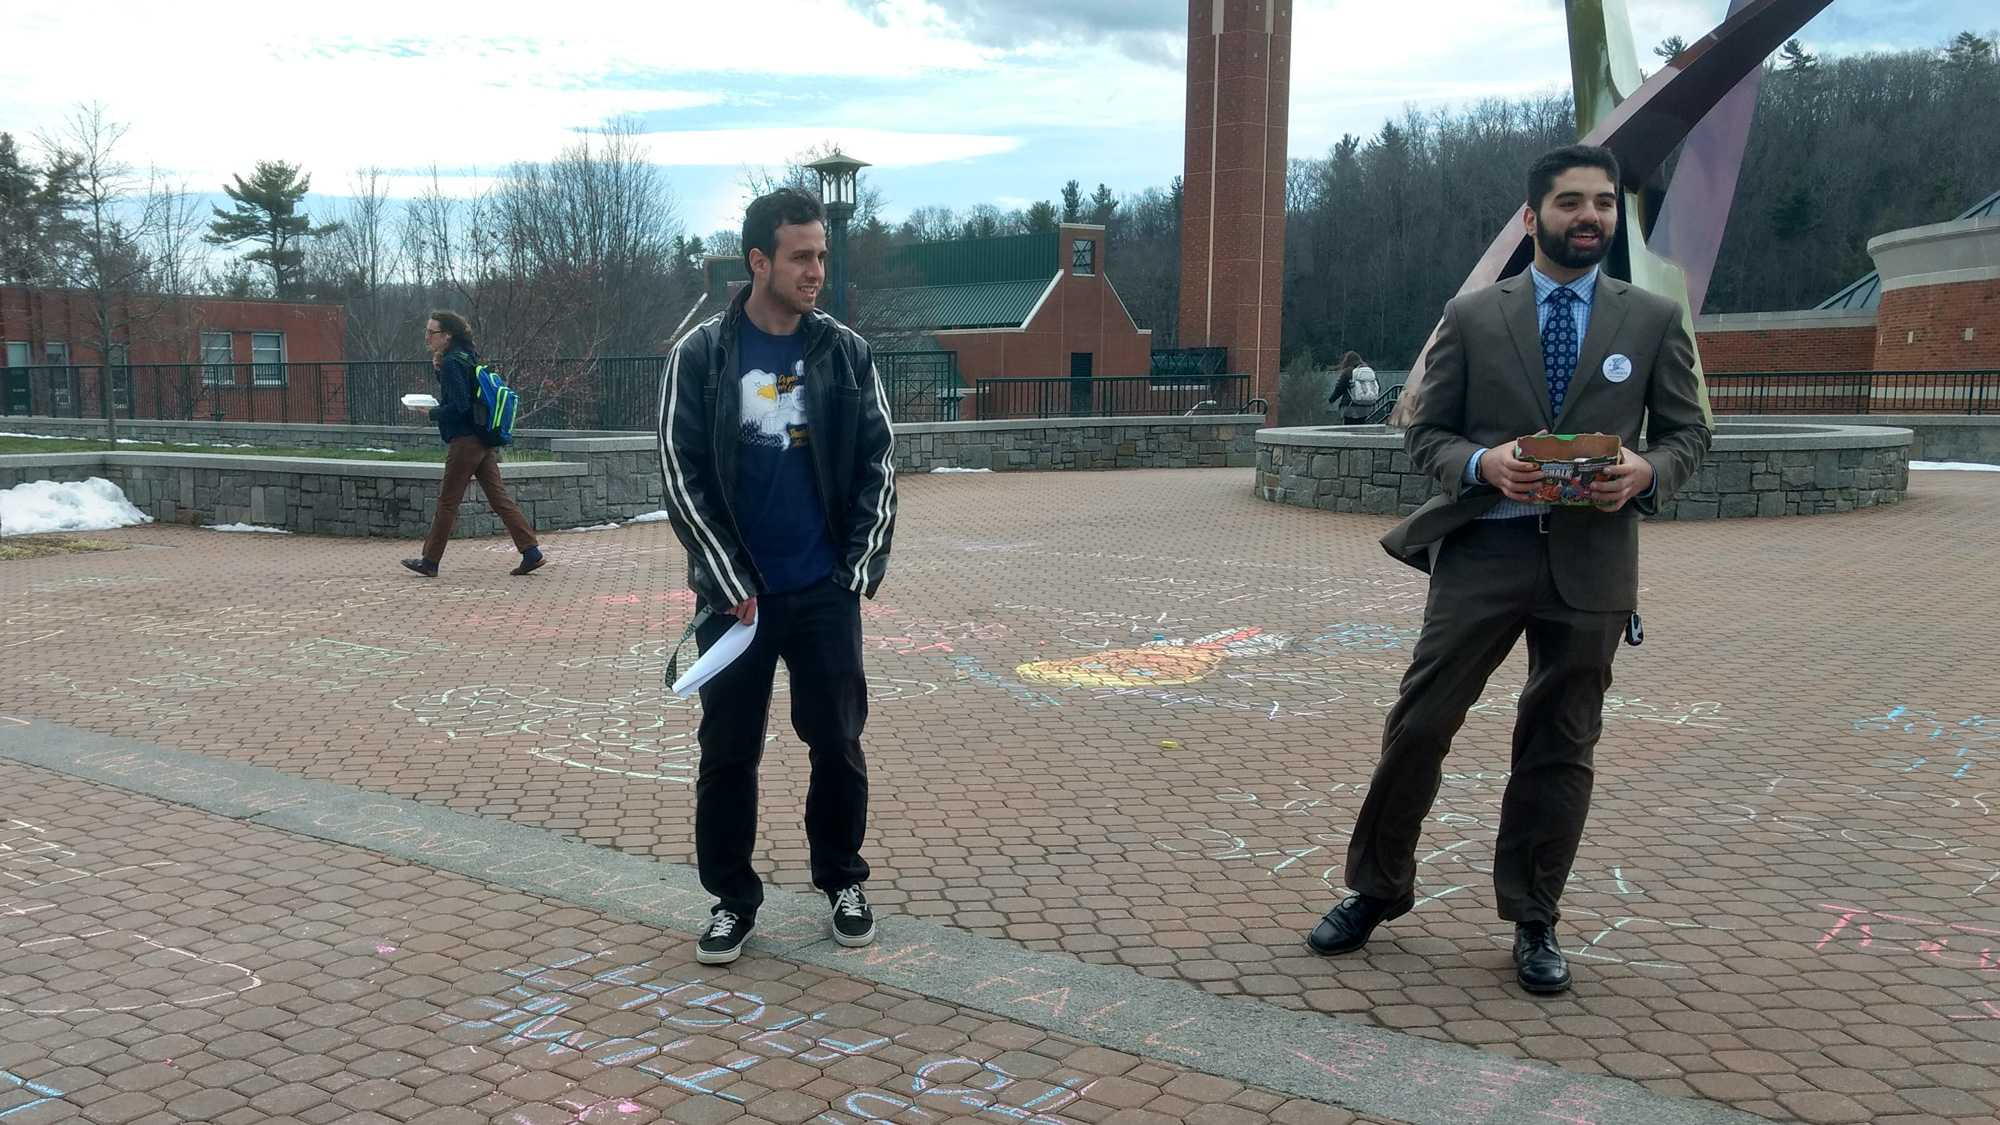 Free speech protest held against university's chalking policy